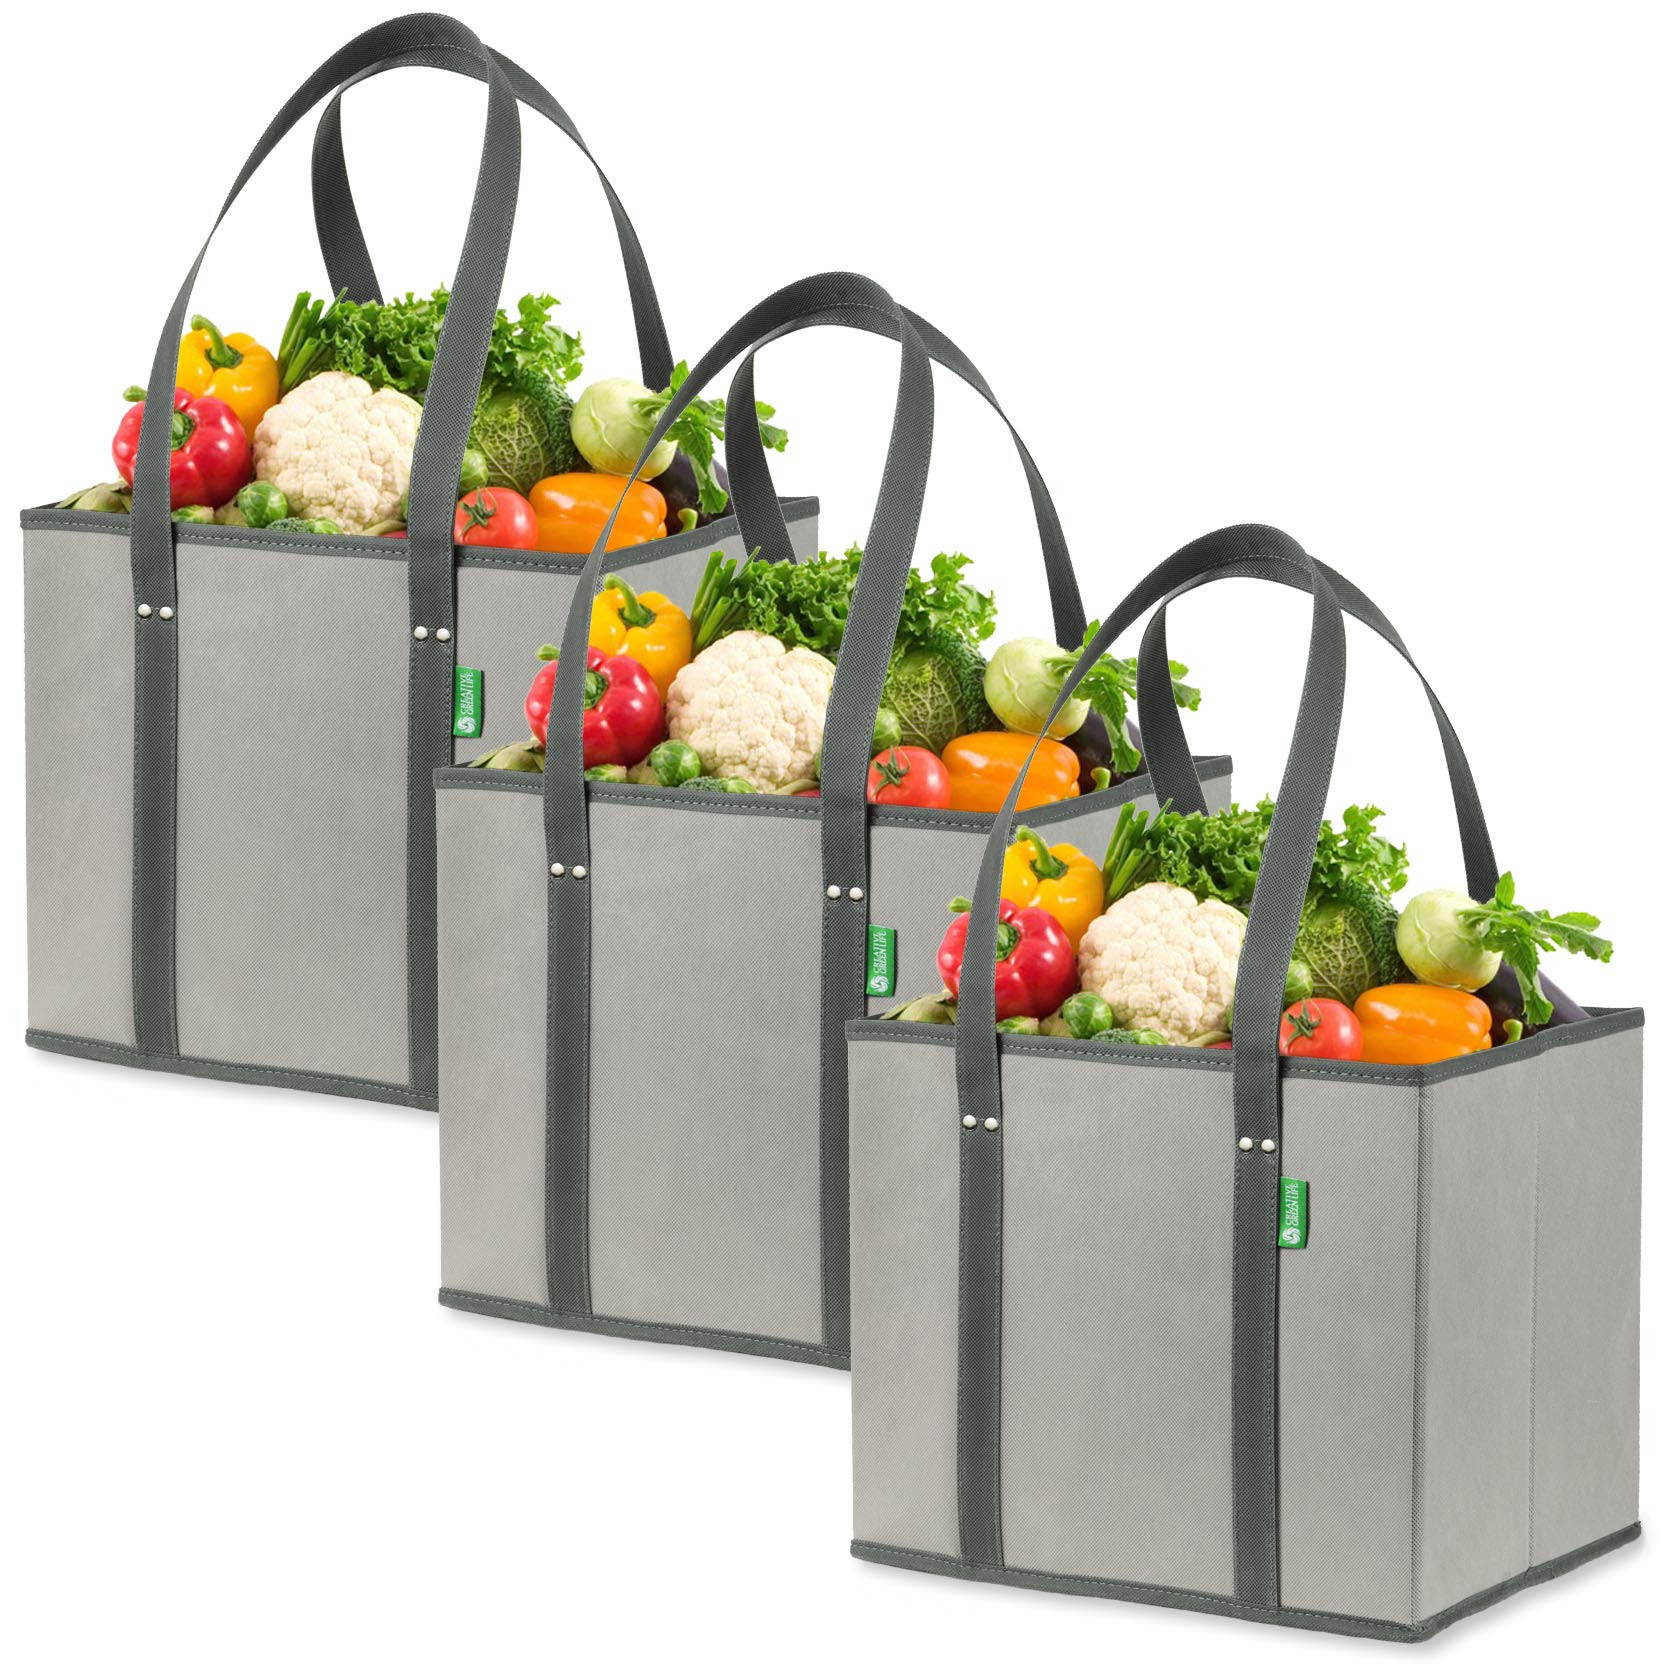 Reusable Grocery Shopping Box Bags (3 Pack - Gray). Large, Premium Quality Heavy Duty Tote Bag Set with Extra Long Handles & Reinforced Bottom. Foldable, Collapsible, Durable and Eco Friendly by Creative Green Life